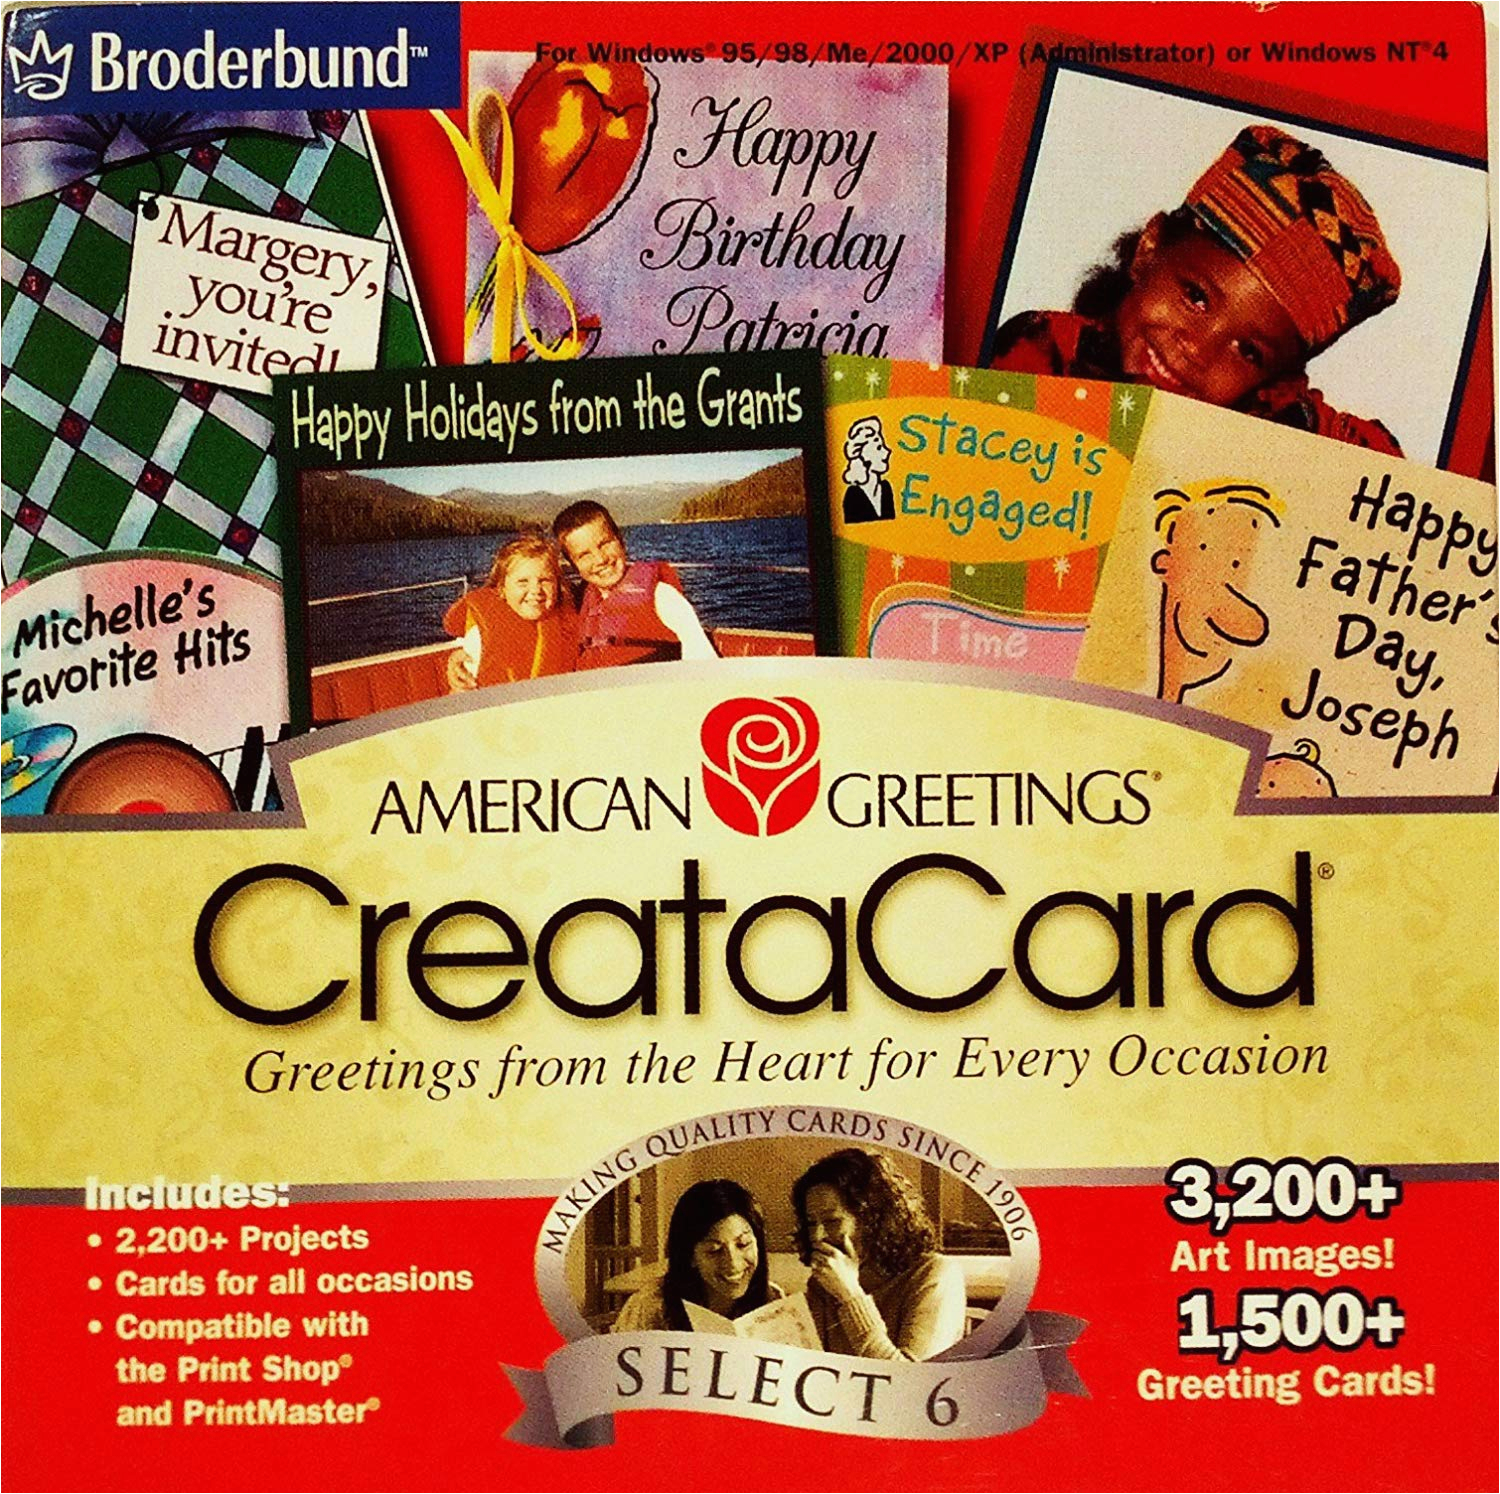 Free Birthday Cards American Greetings American Greetings Creatacard